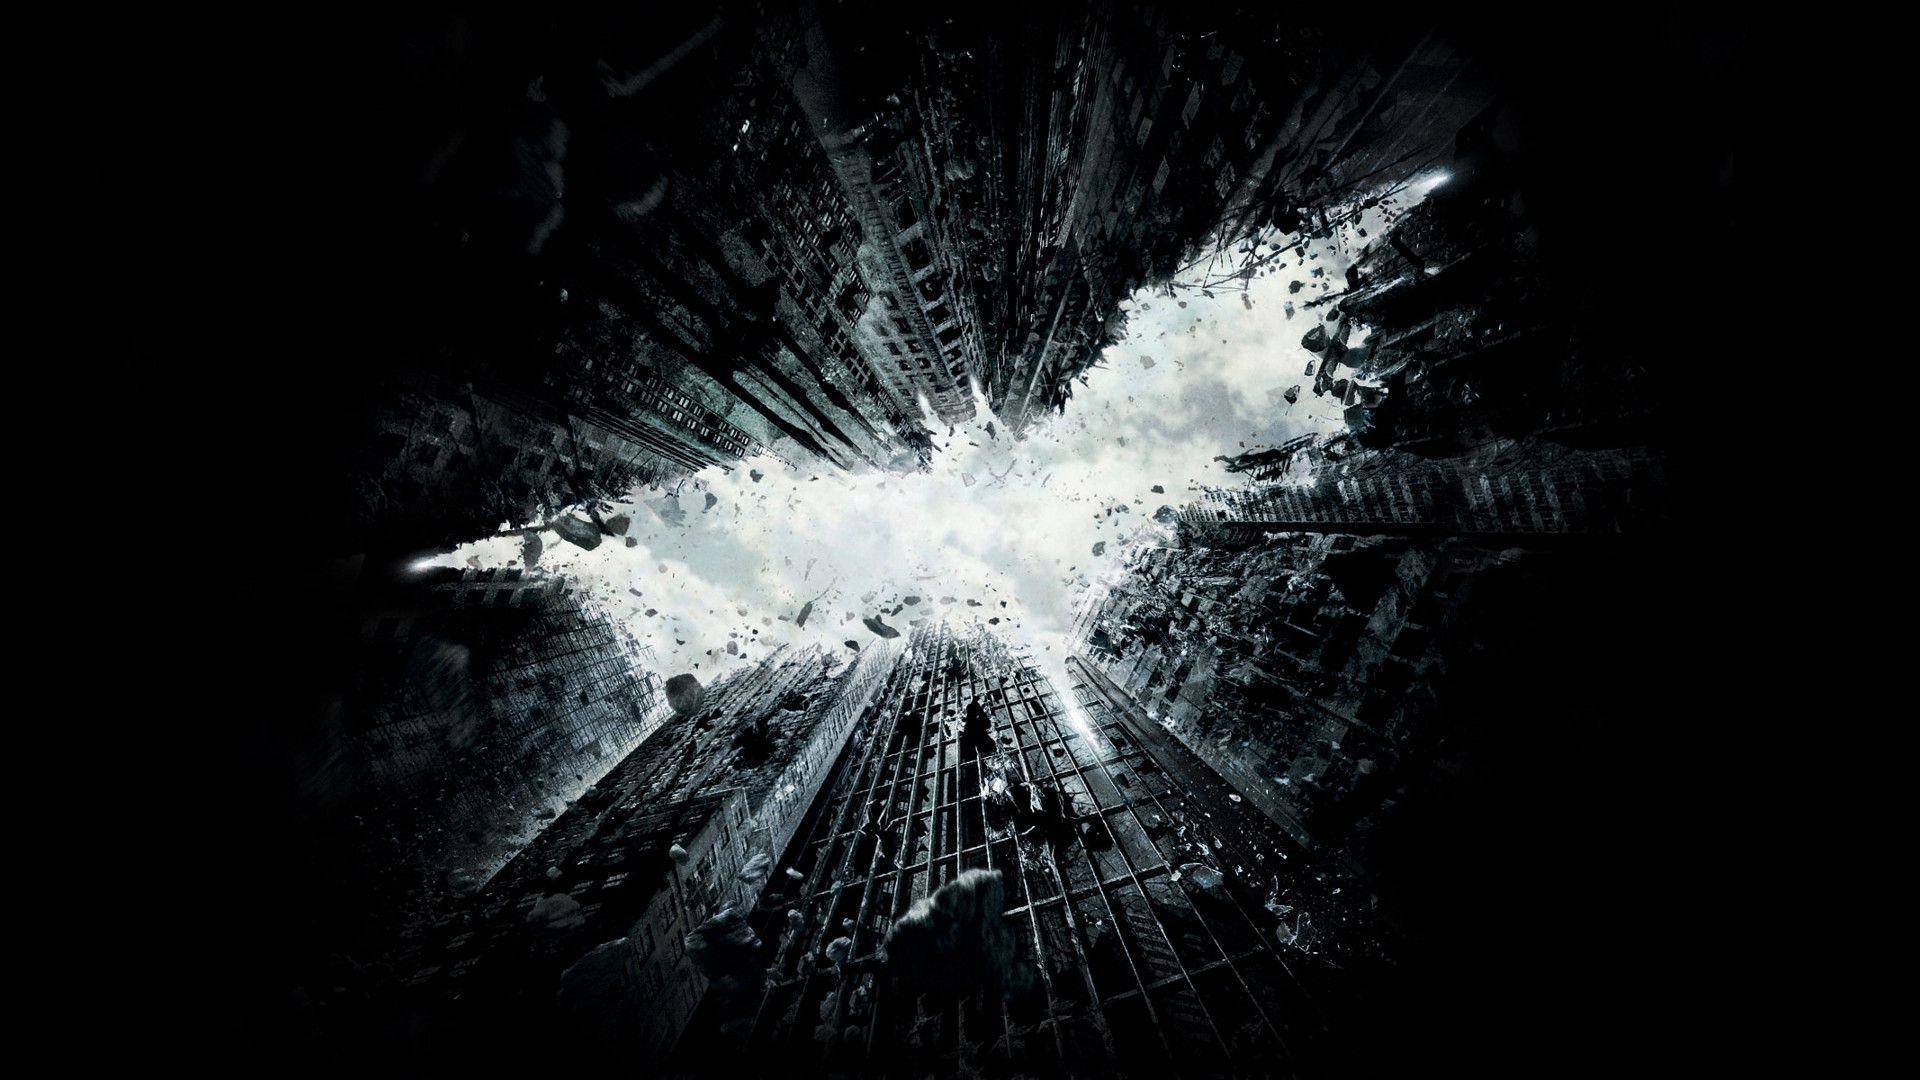 1920x1080 Wallpapers For > The Dark Knight Rises Wallpaper Hd